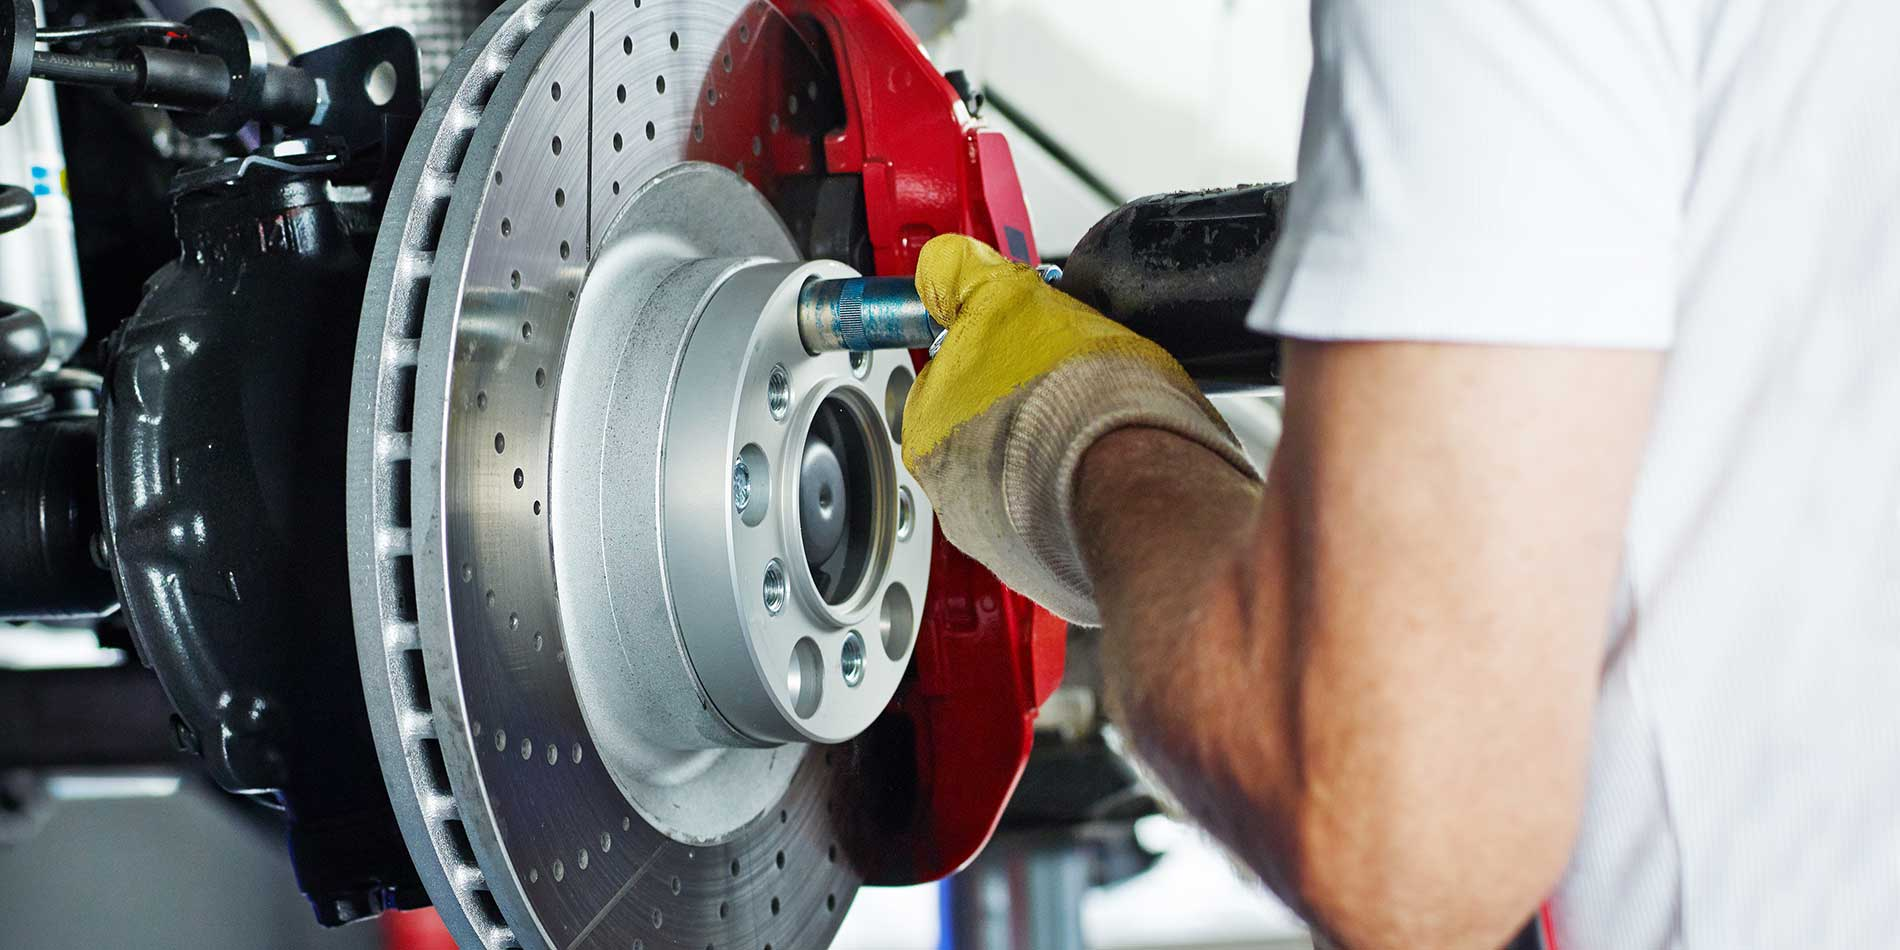 featuredimage-Time-for-new-brakes